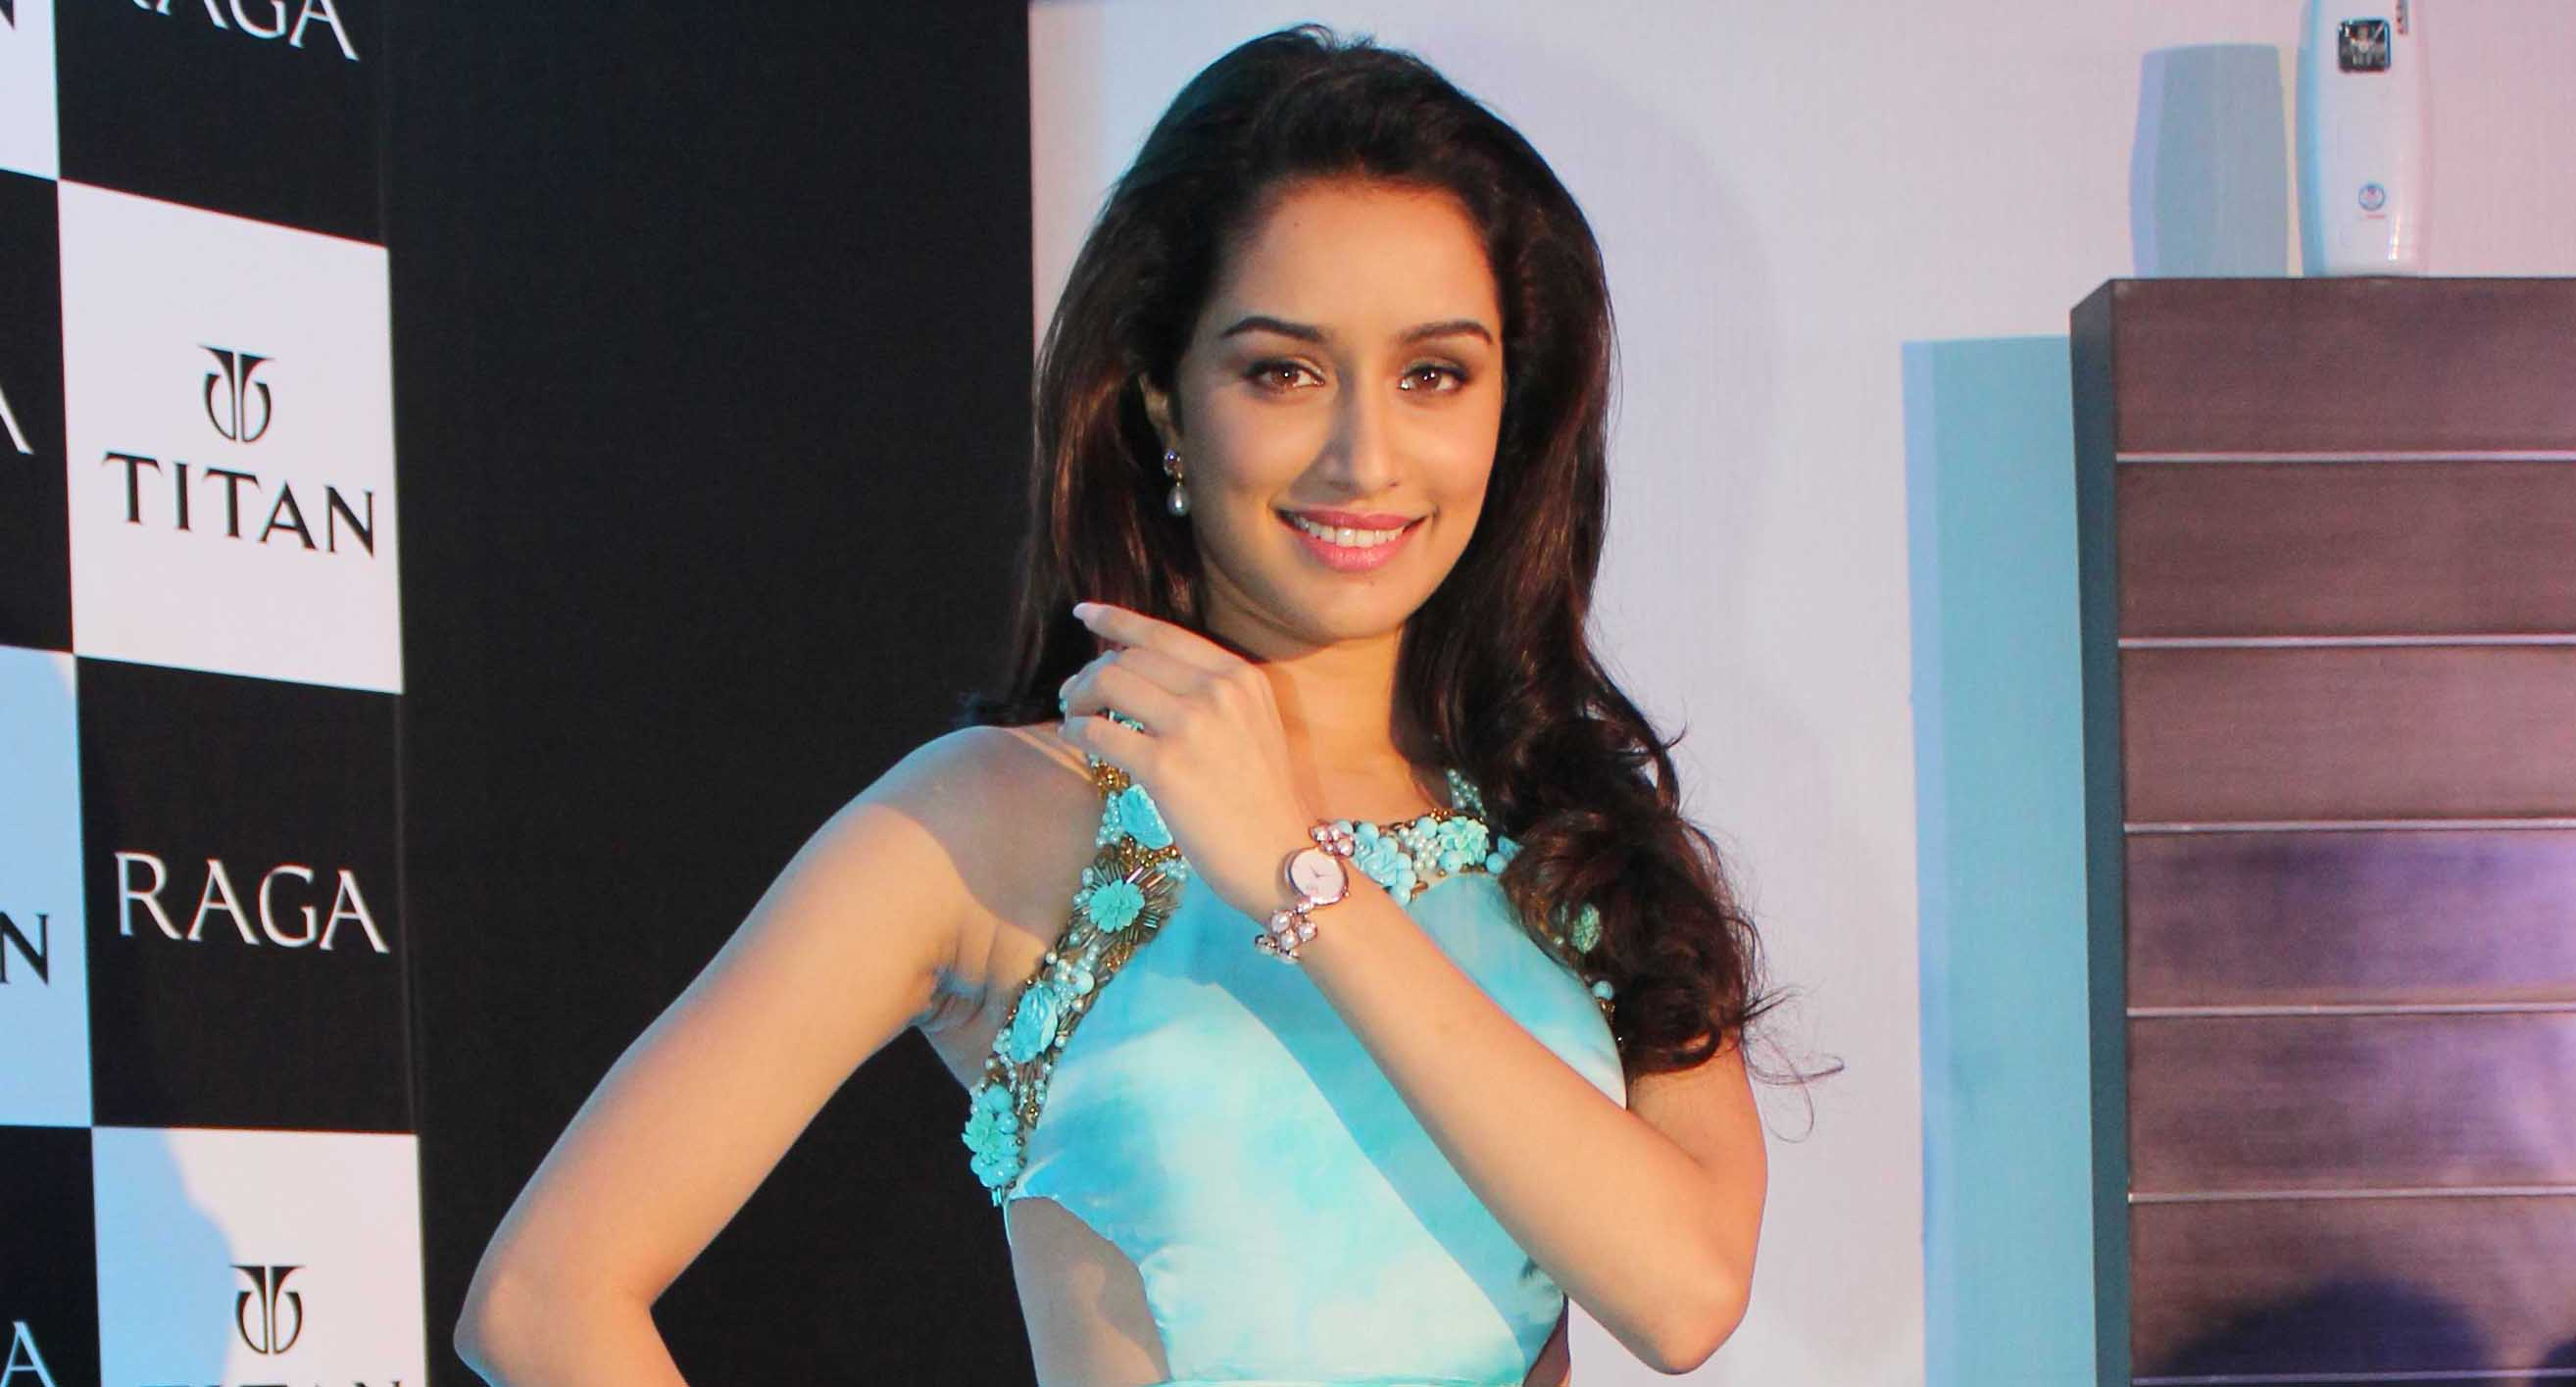 scenic shraddha kapoor hot looks in short cloths pictures